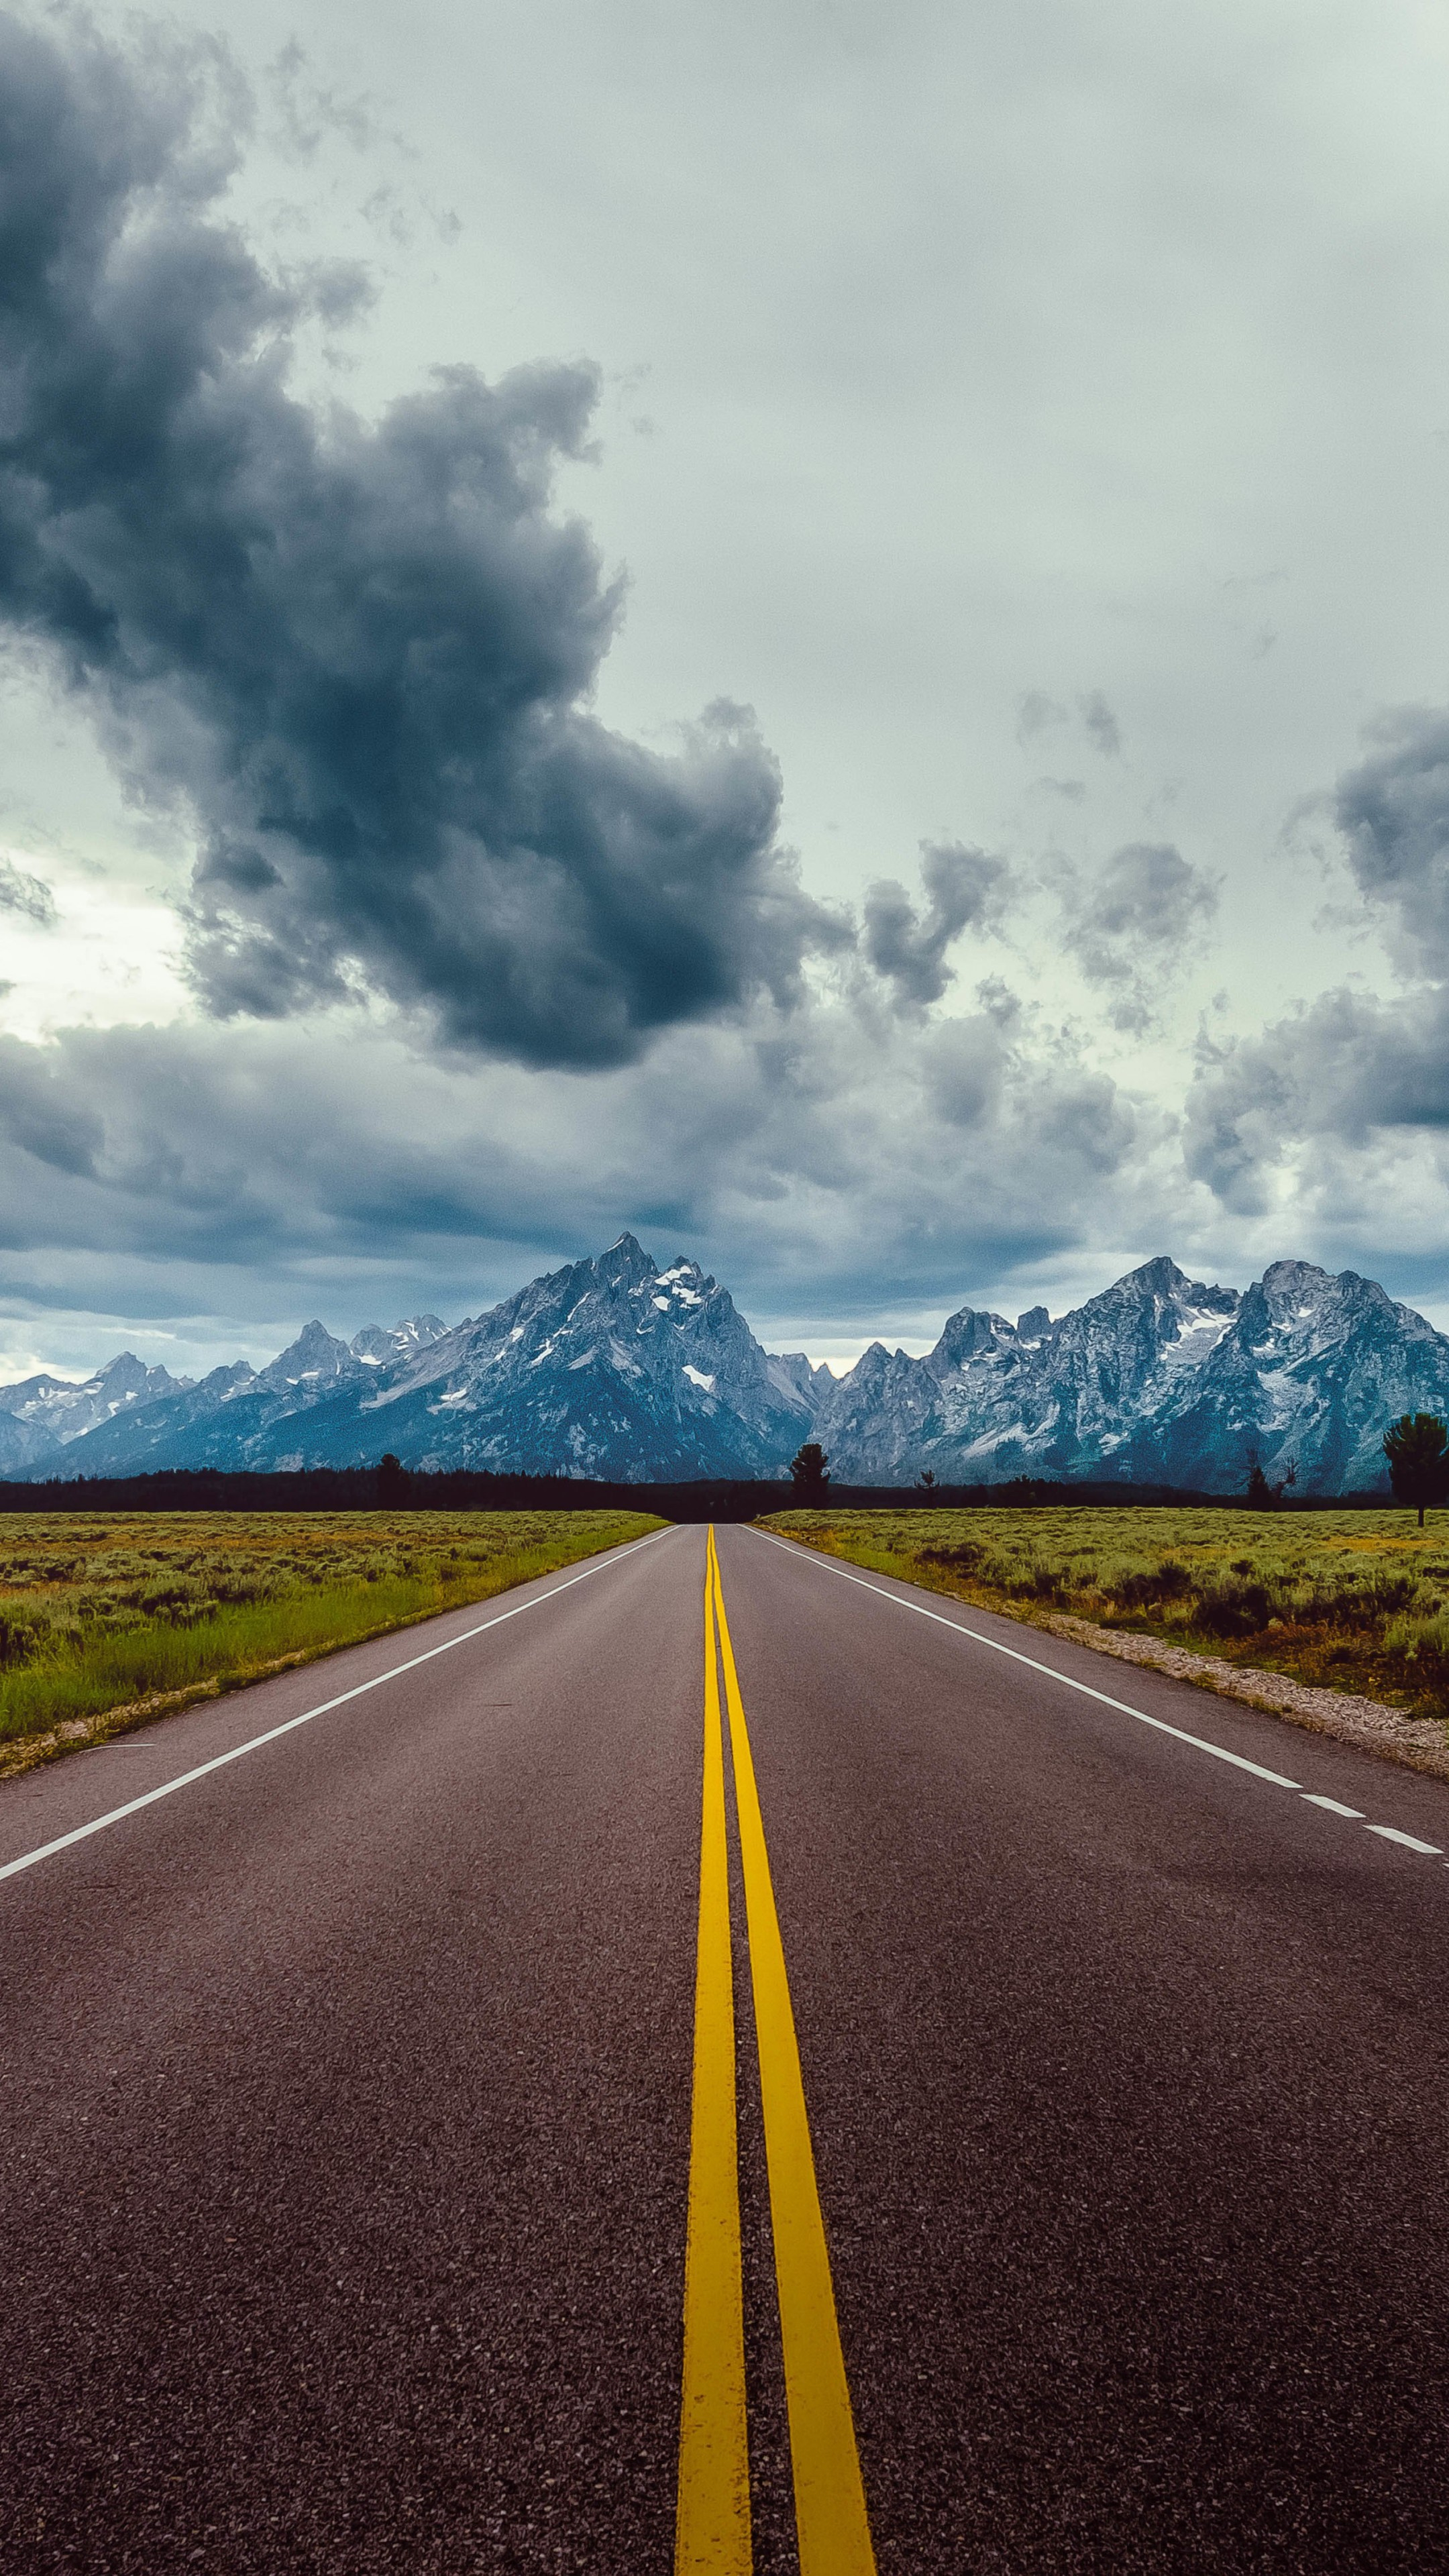 Wallpaper Road Sky Clouds Mountains 8k Nature 17775